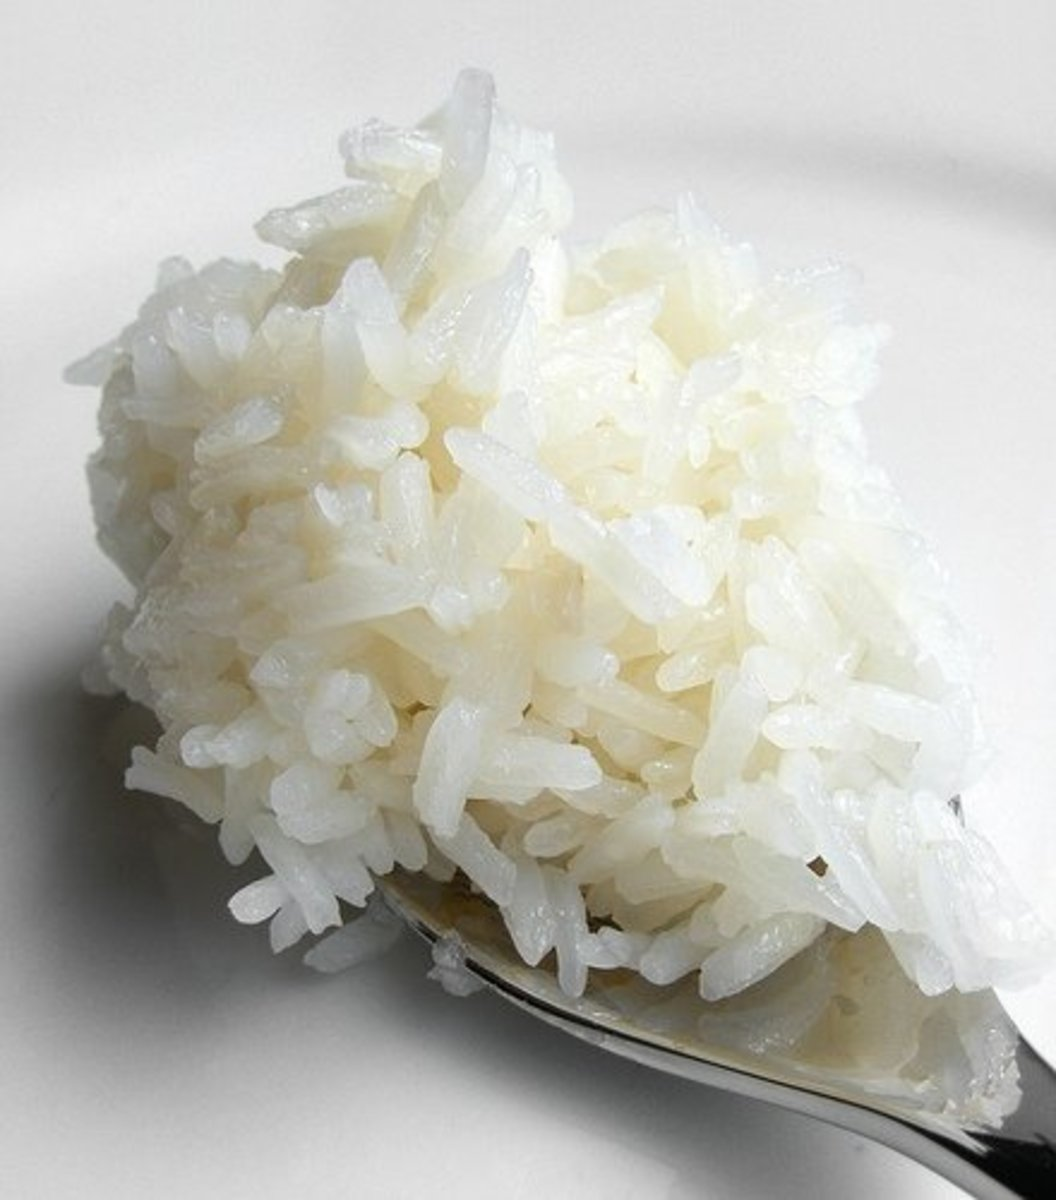 Cooked White Glutinous Rice (Photo courtesy by FotoosVanRobin from Flickr.com)